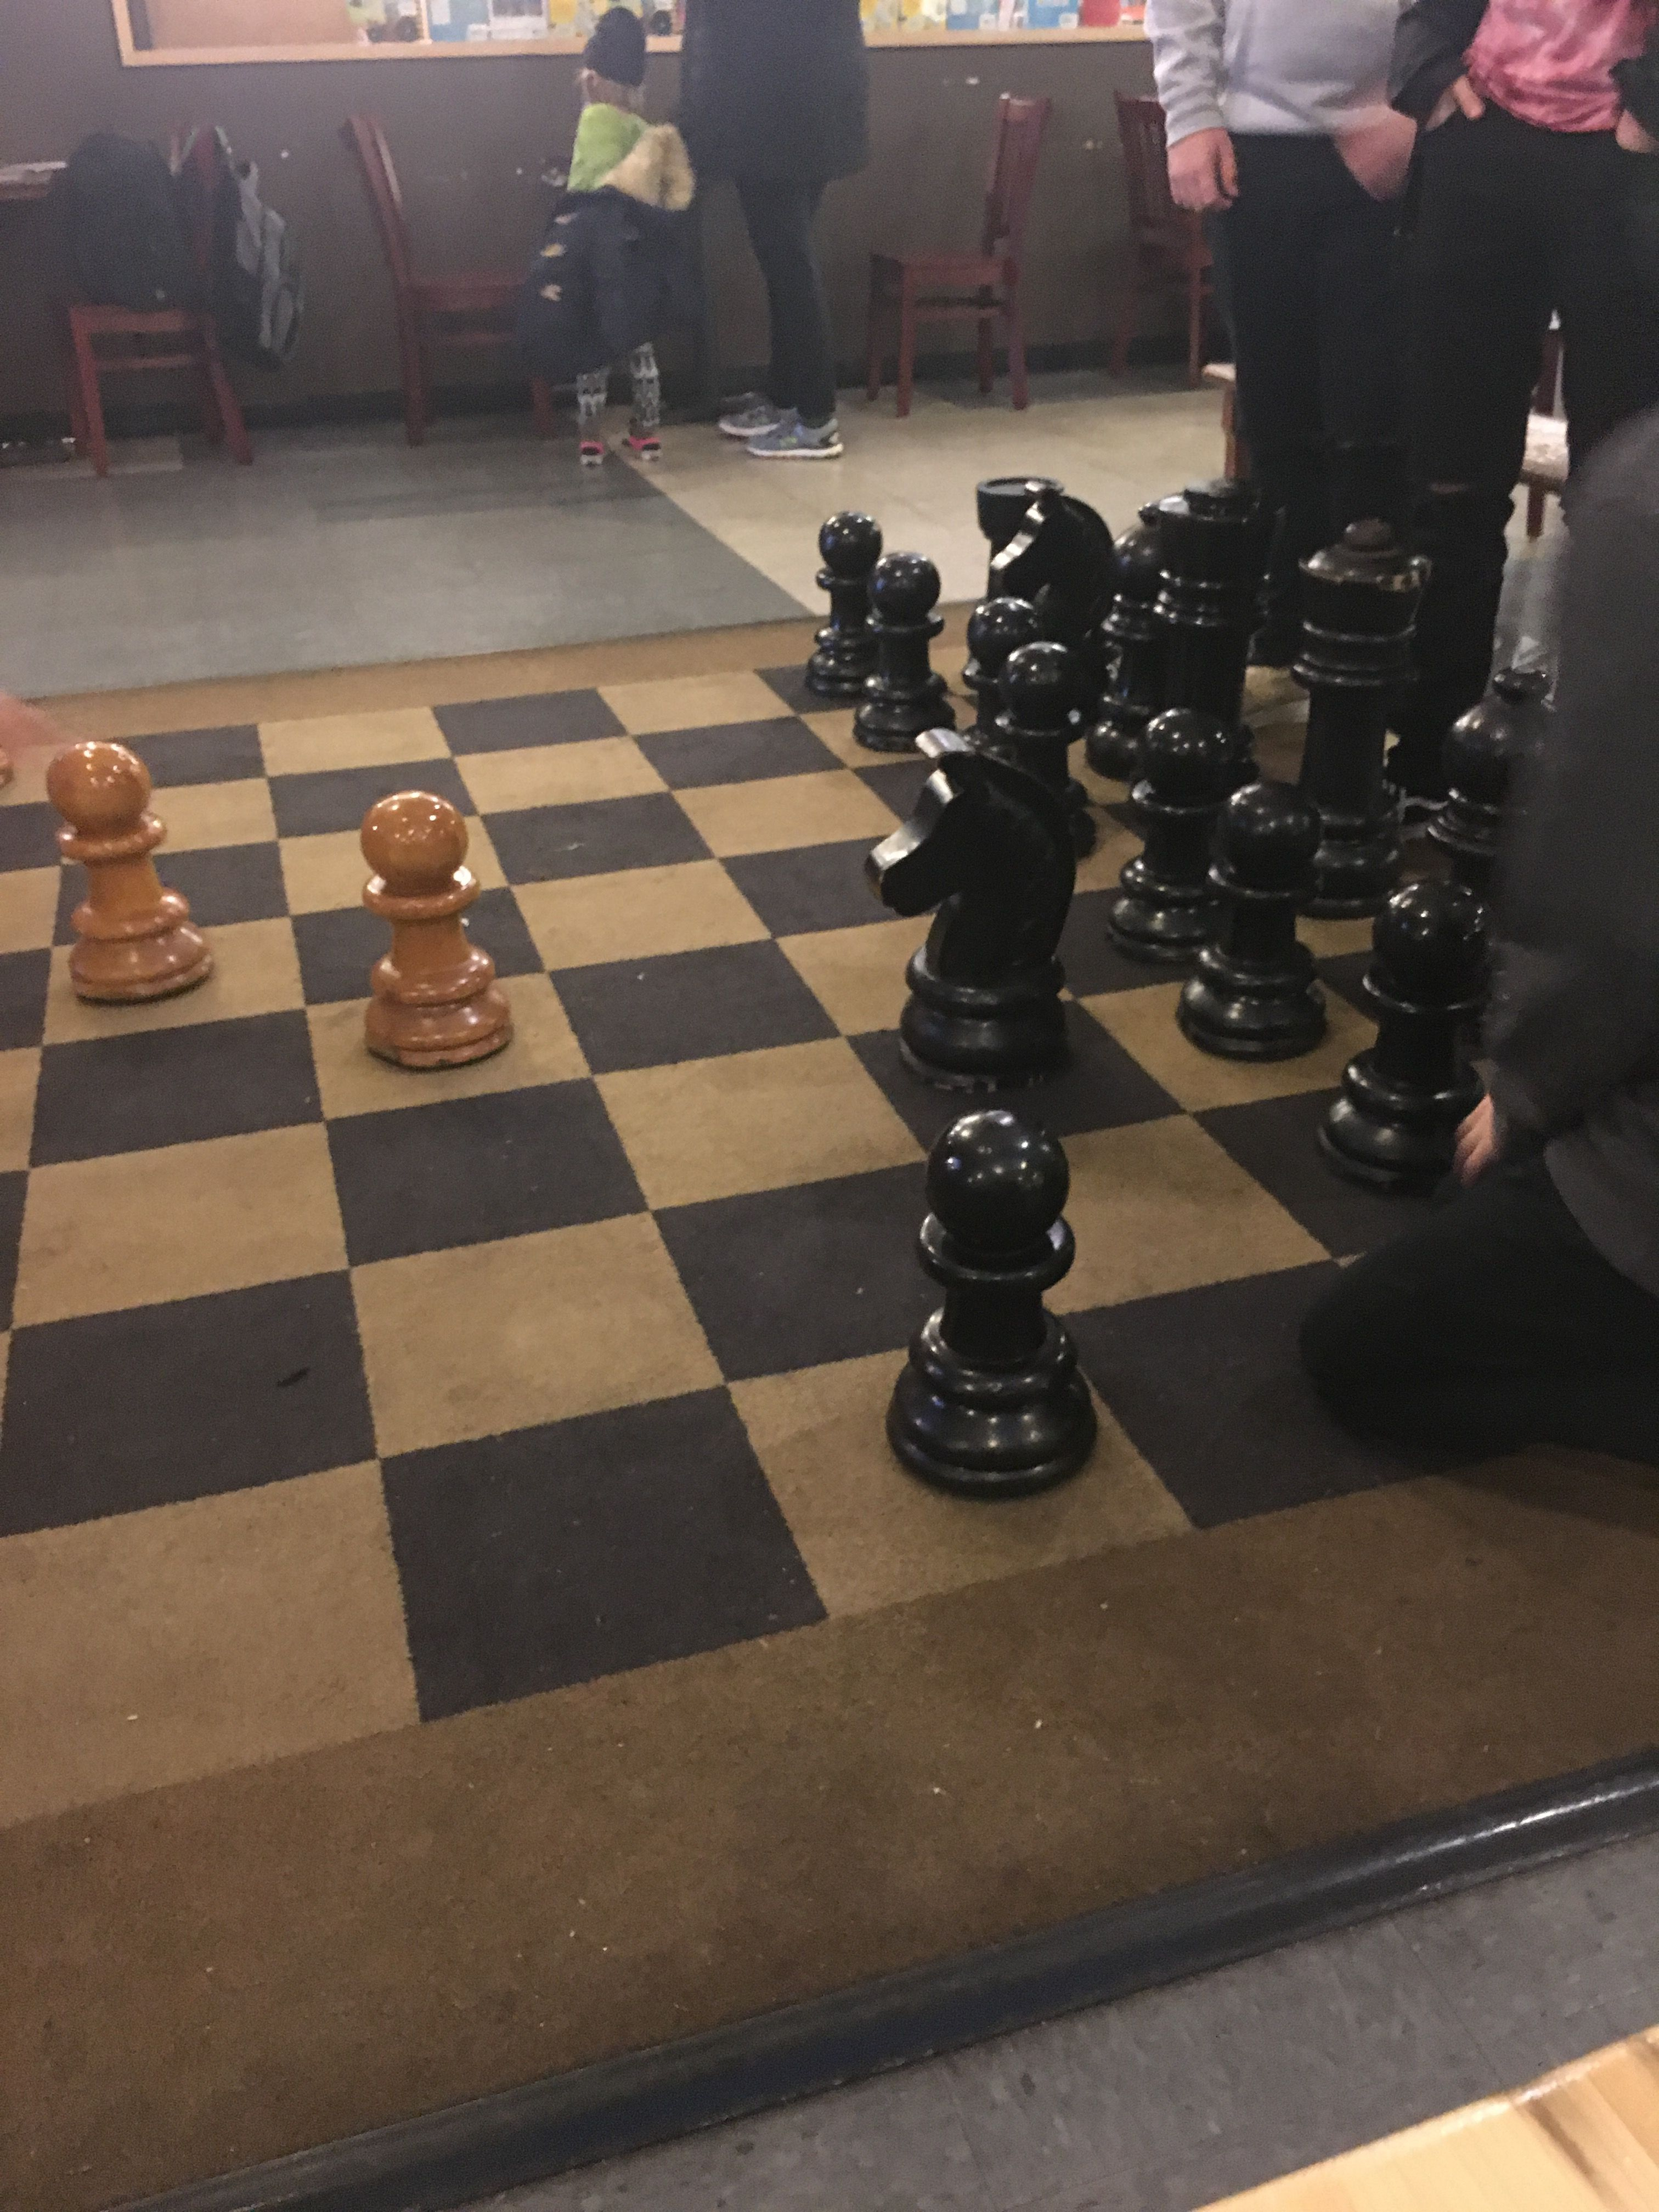 The game of chess teaches moves and counter ones. Each